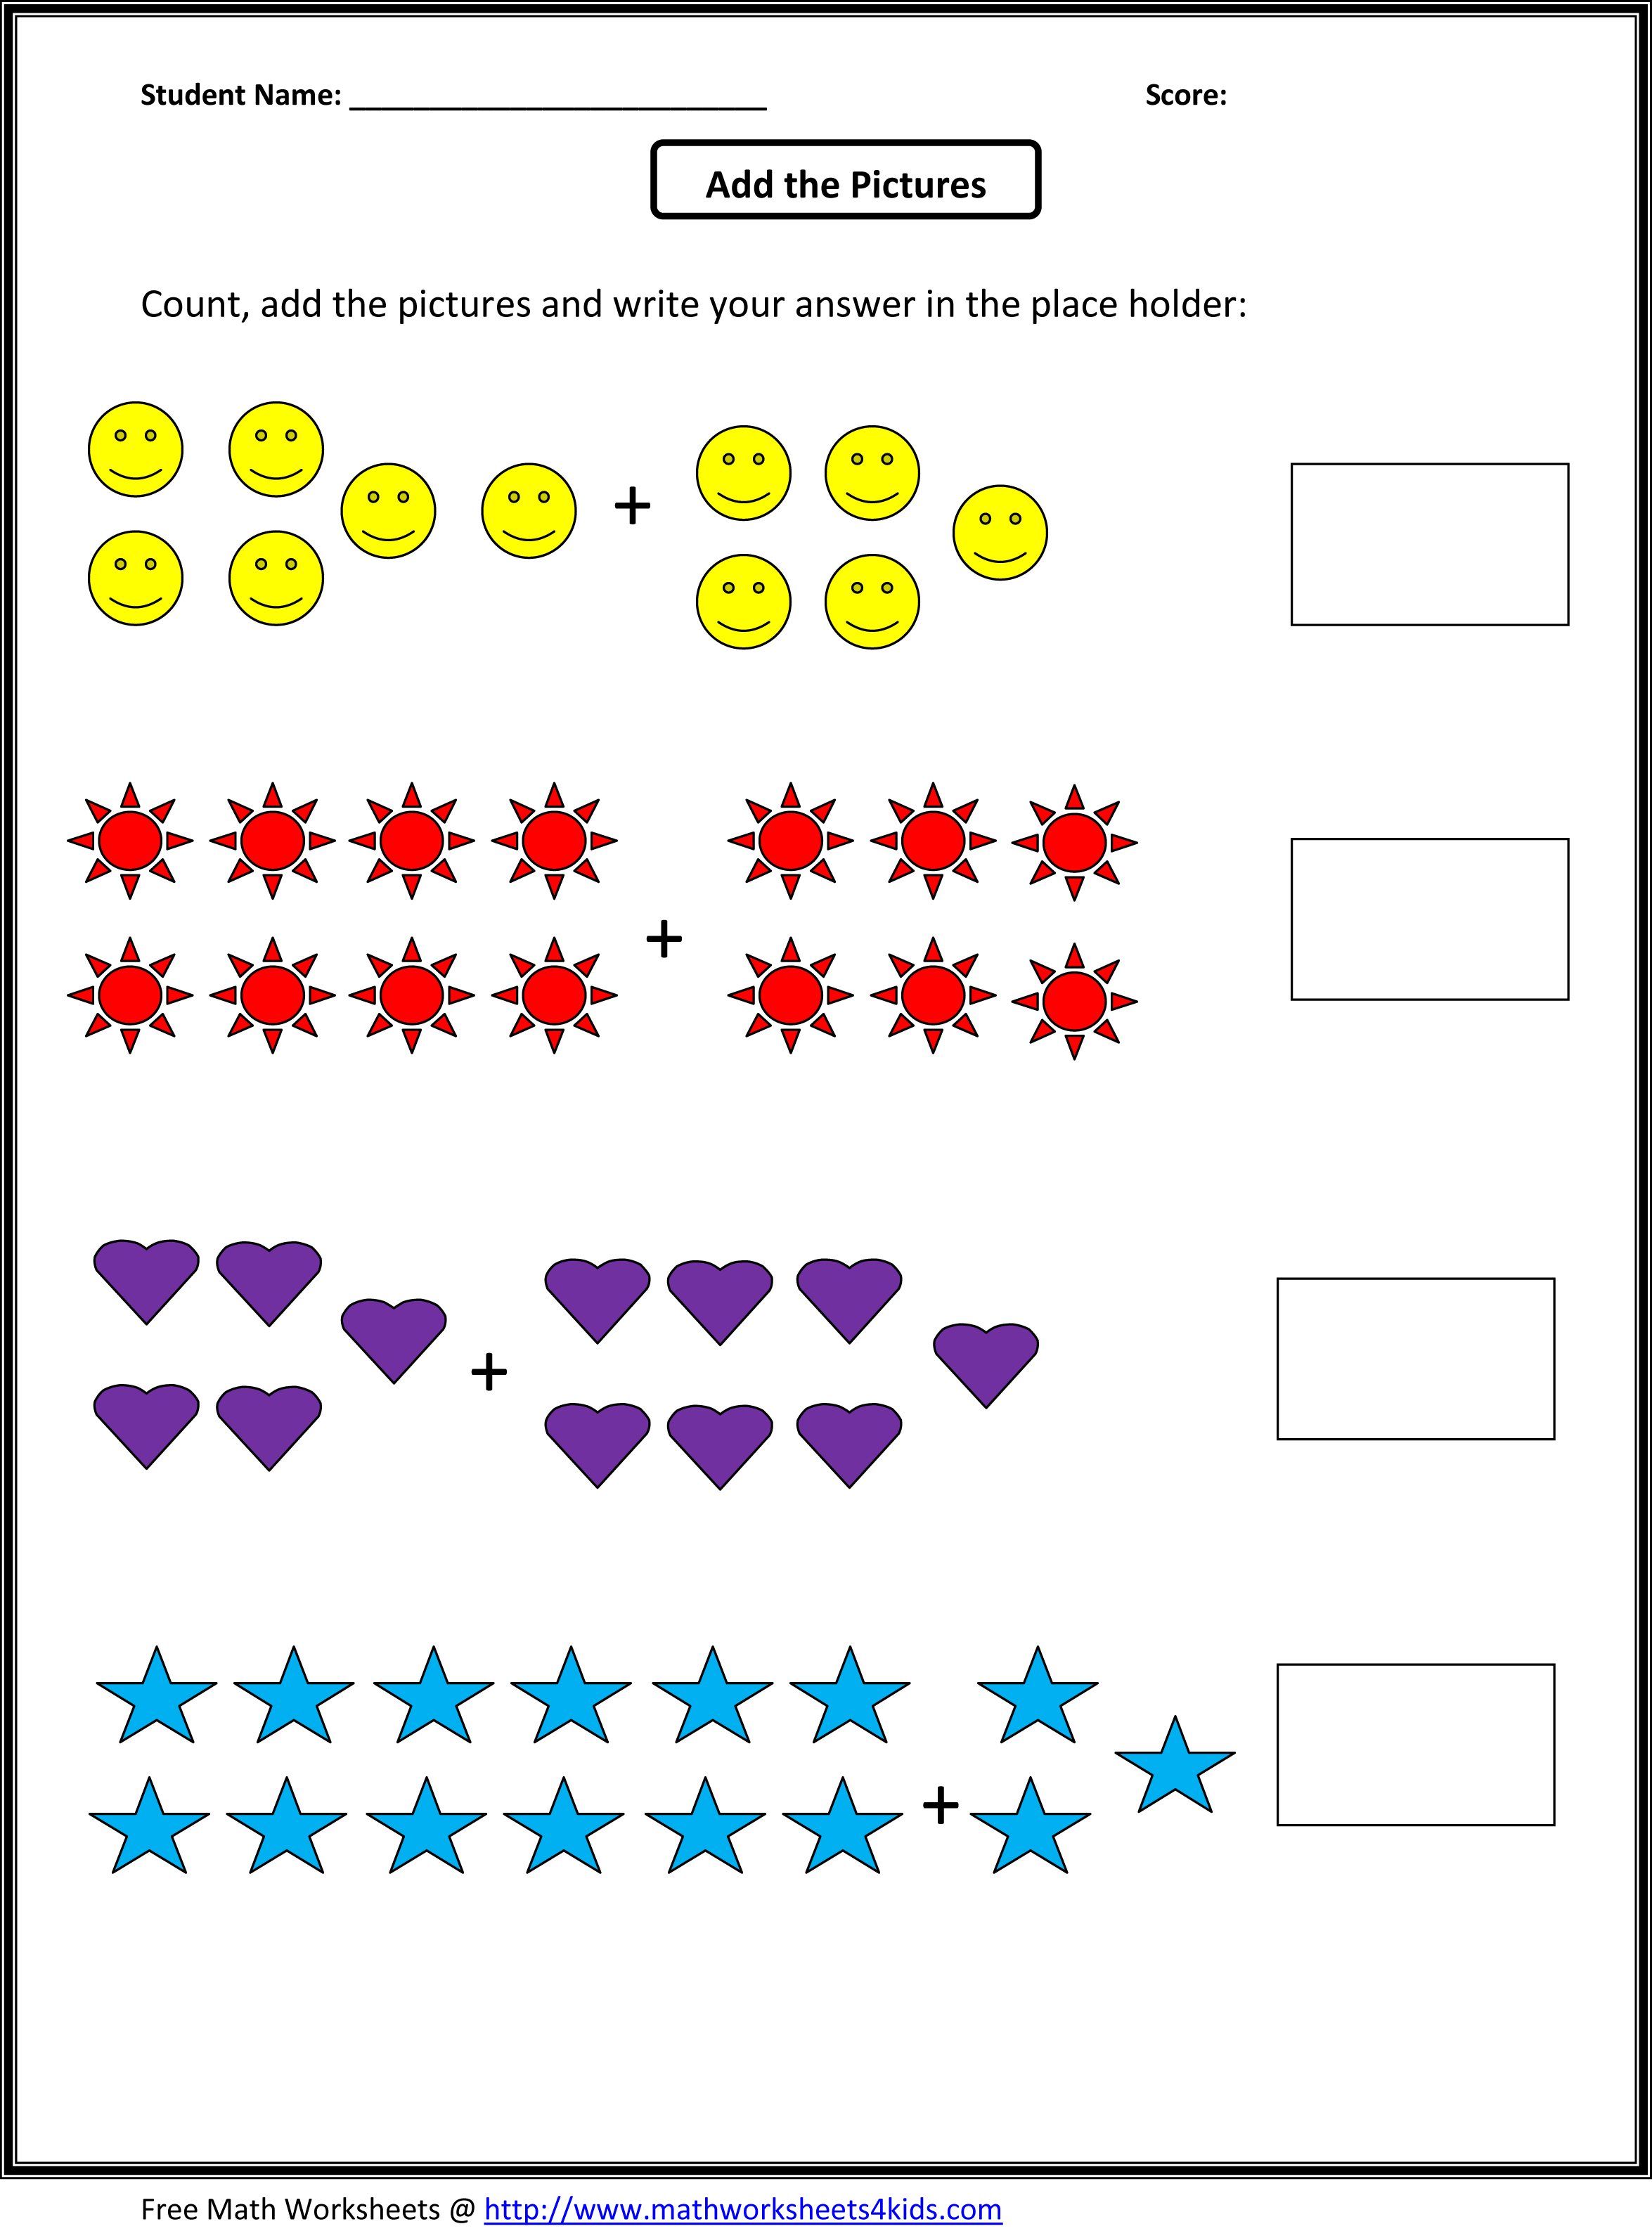 Proatmealus  Pretty Grade  Maths Worksheet  Reocurent With Fascinating Math Worksheets For St Grade Free  Reocurent With Nice Super Teacher Worksheets Grade  Also Fractions Decimals And Percentages Worksheets Ks In Addition Lines Of Longitude And Latitude Worksheet And English Grammar Free Worksheets As Well As Semicolon And Colon Practice Worksheets Additionally Math Regrouping Worksheet From Reocurentcom With Proatmealus  Fascinating Grade  Maths Worksheet  Reocurent With Nice Math Worksheets For St Grade Free  Reocurent And Pretty Super Teacher Worksheets Grade  Also Fractions Decimals And Percentages Worksheets Ks In Addition Lines Of Longitude And Latitude Worksheet From Reocurentcom